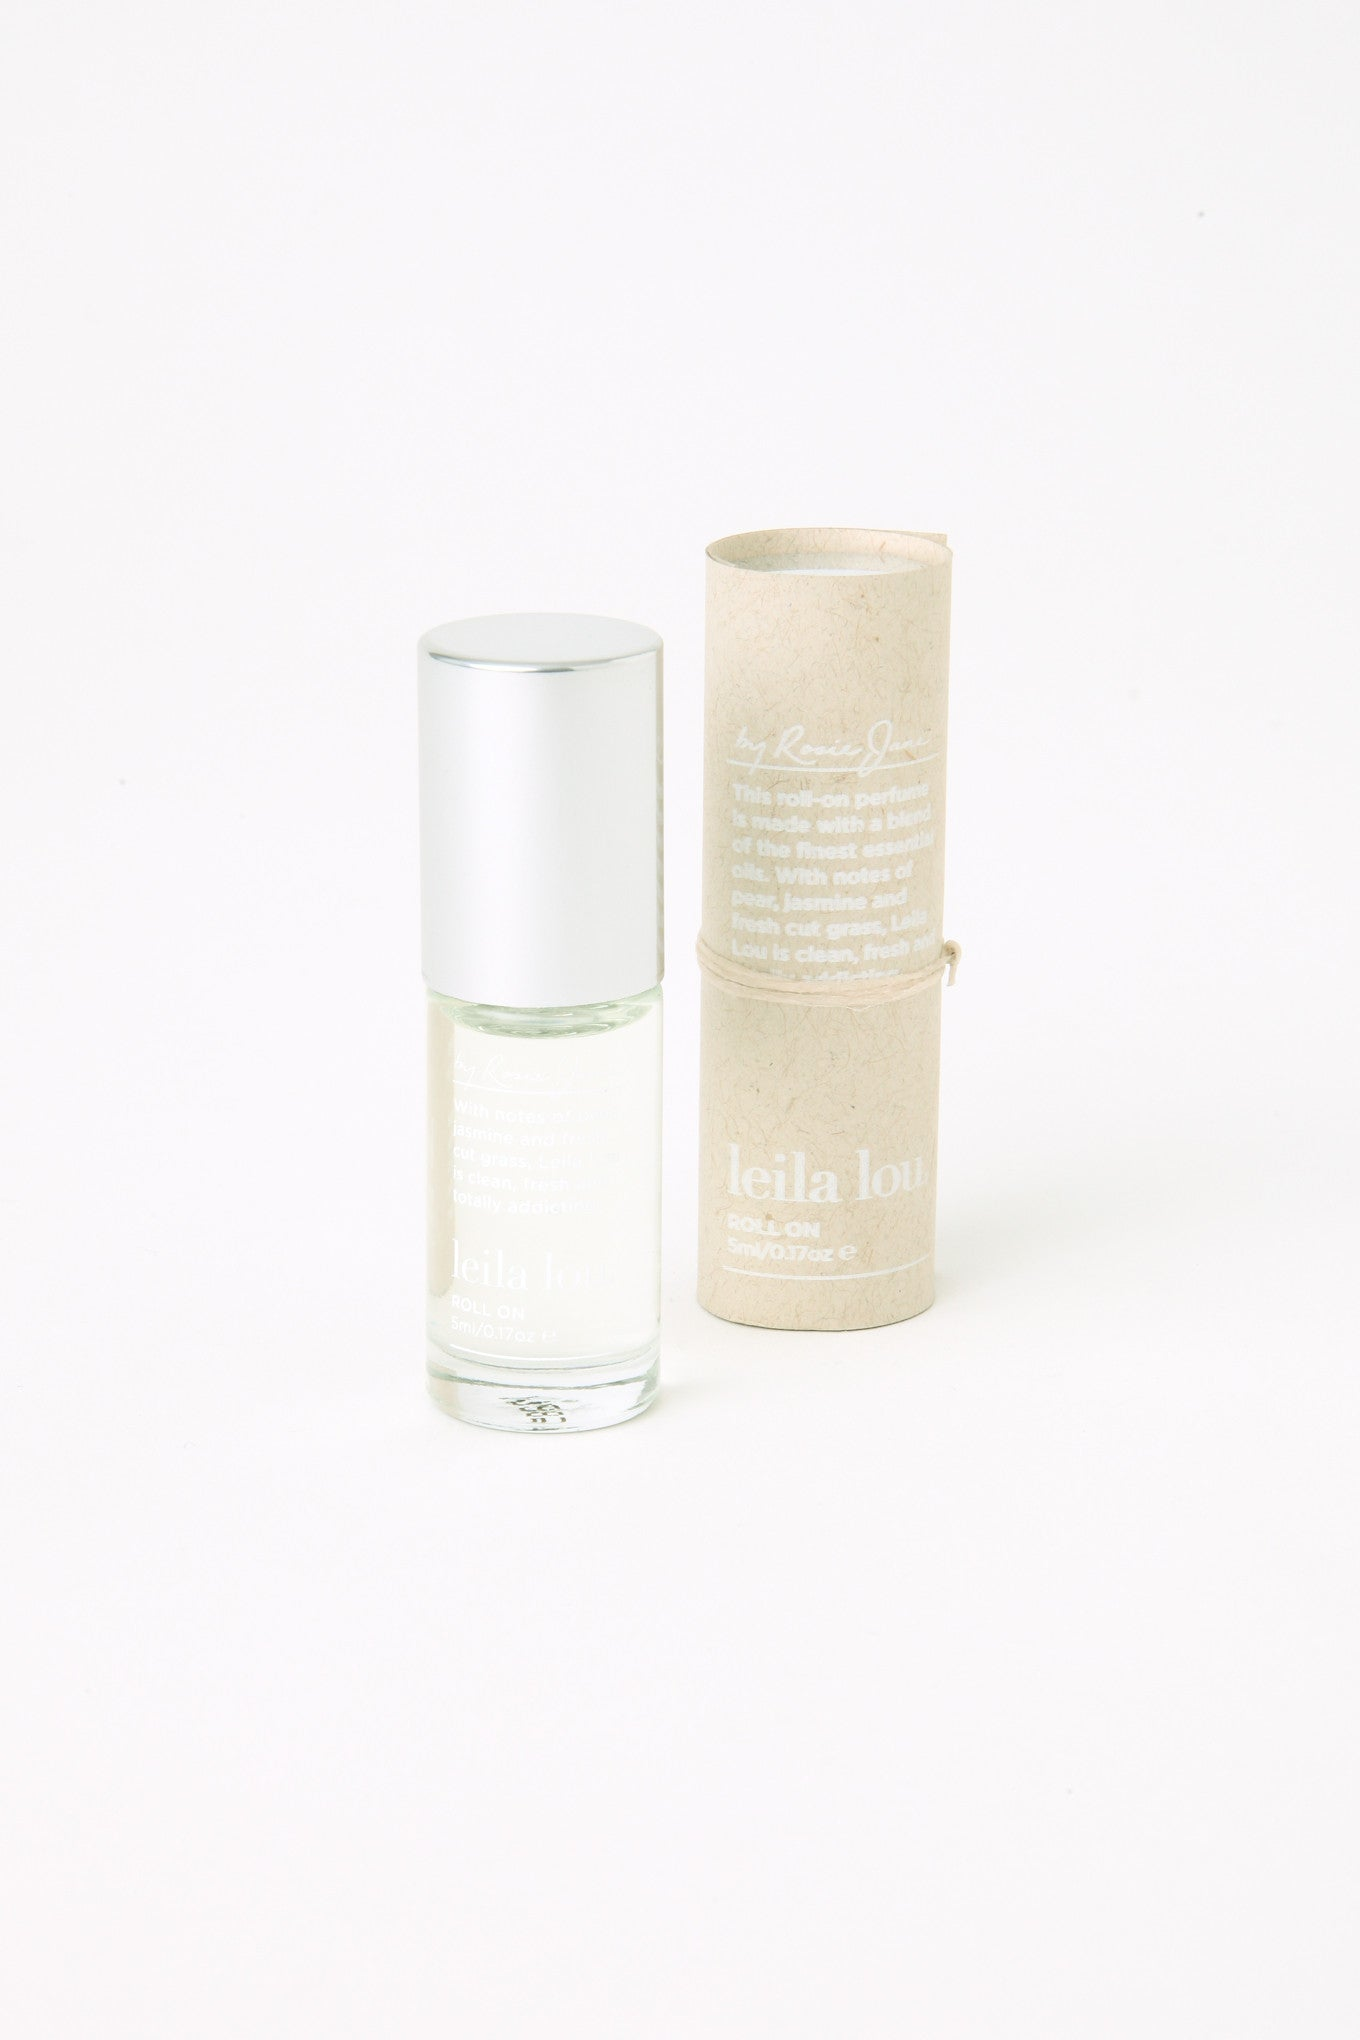 By Rosie Jane / Leila Lou Perfume Oil